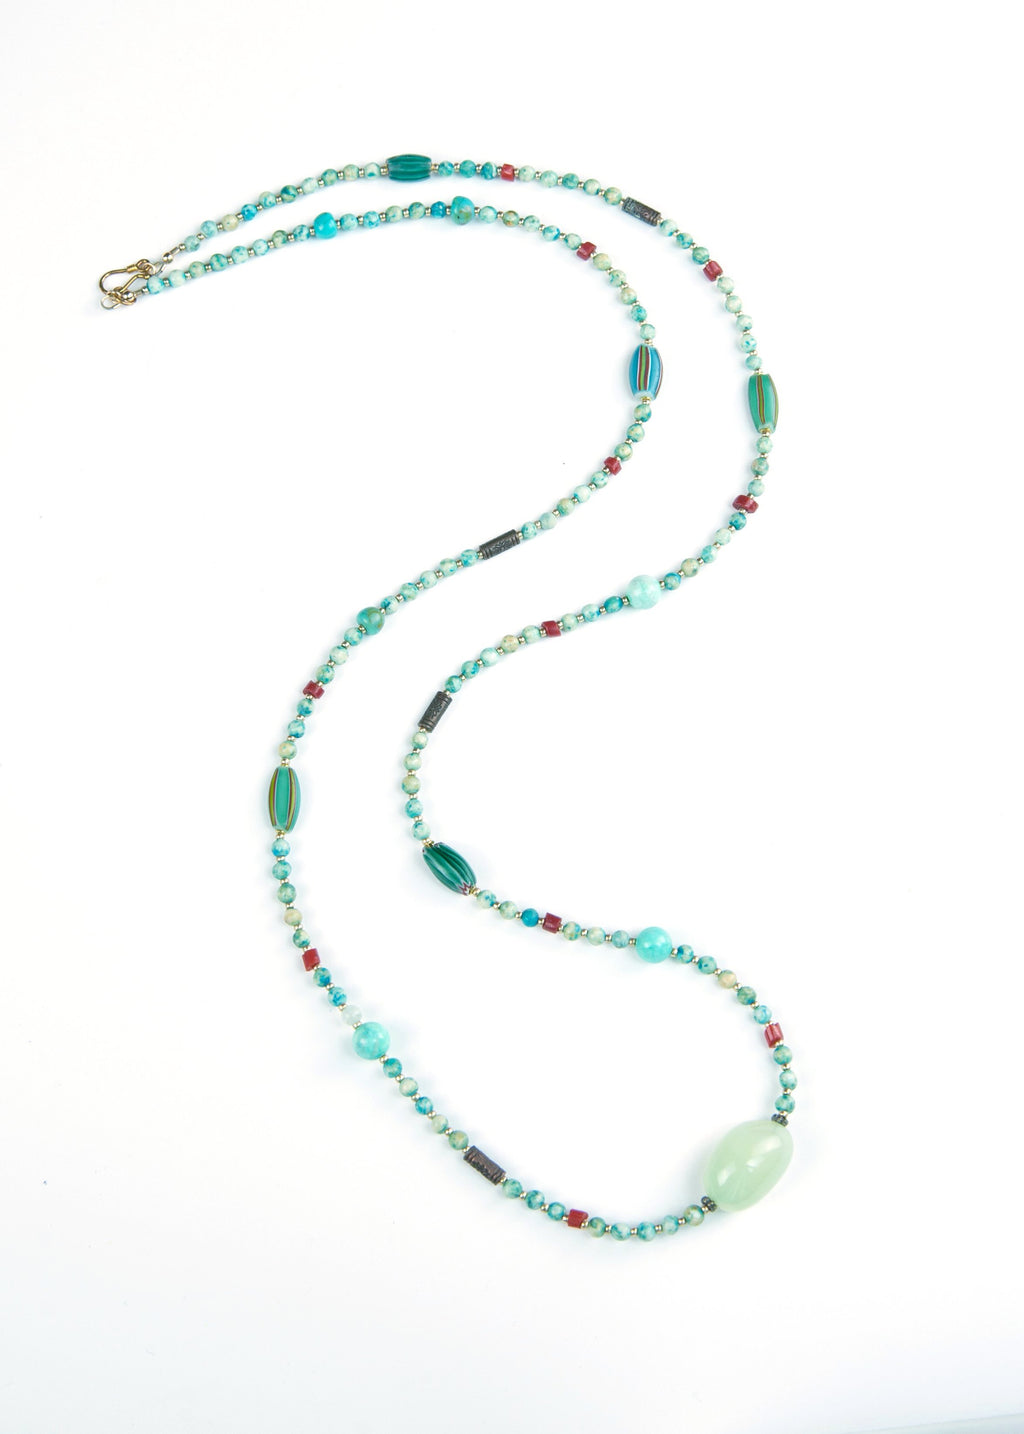 Blue Green Stone Yoga Necklace